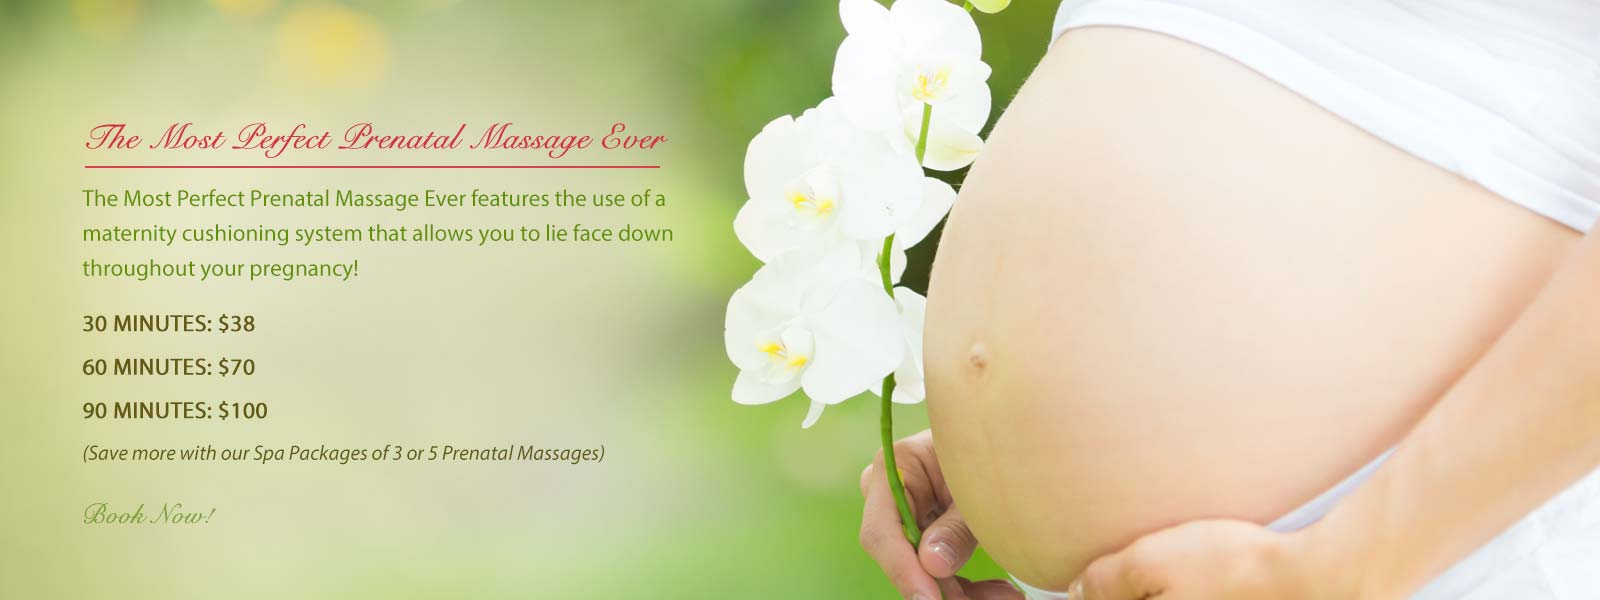 The Most Perfect Prenatal Massage. Exclusively at Pacific Tranquility Massage. Local Massage Therapist near me.